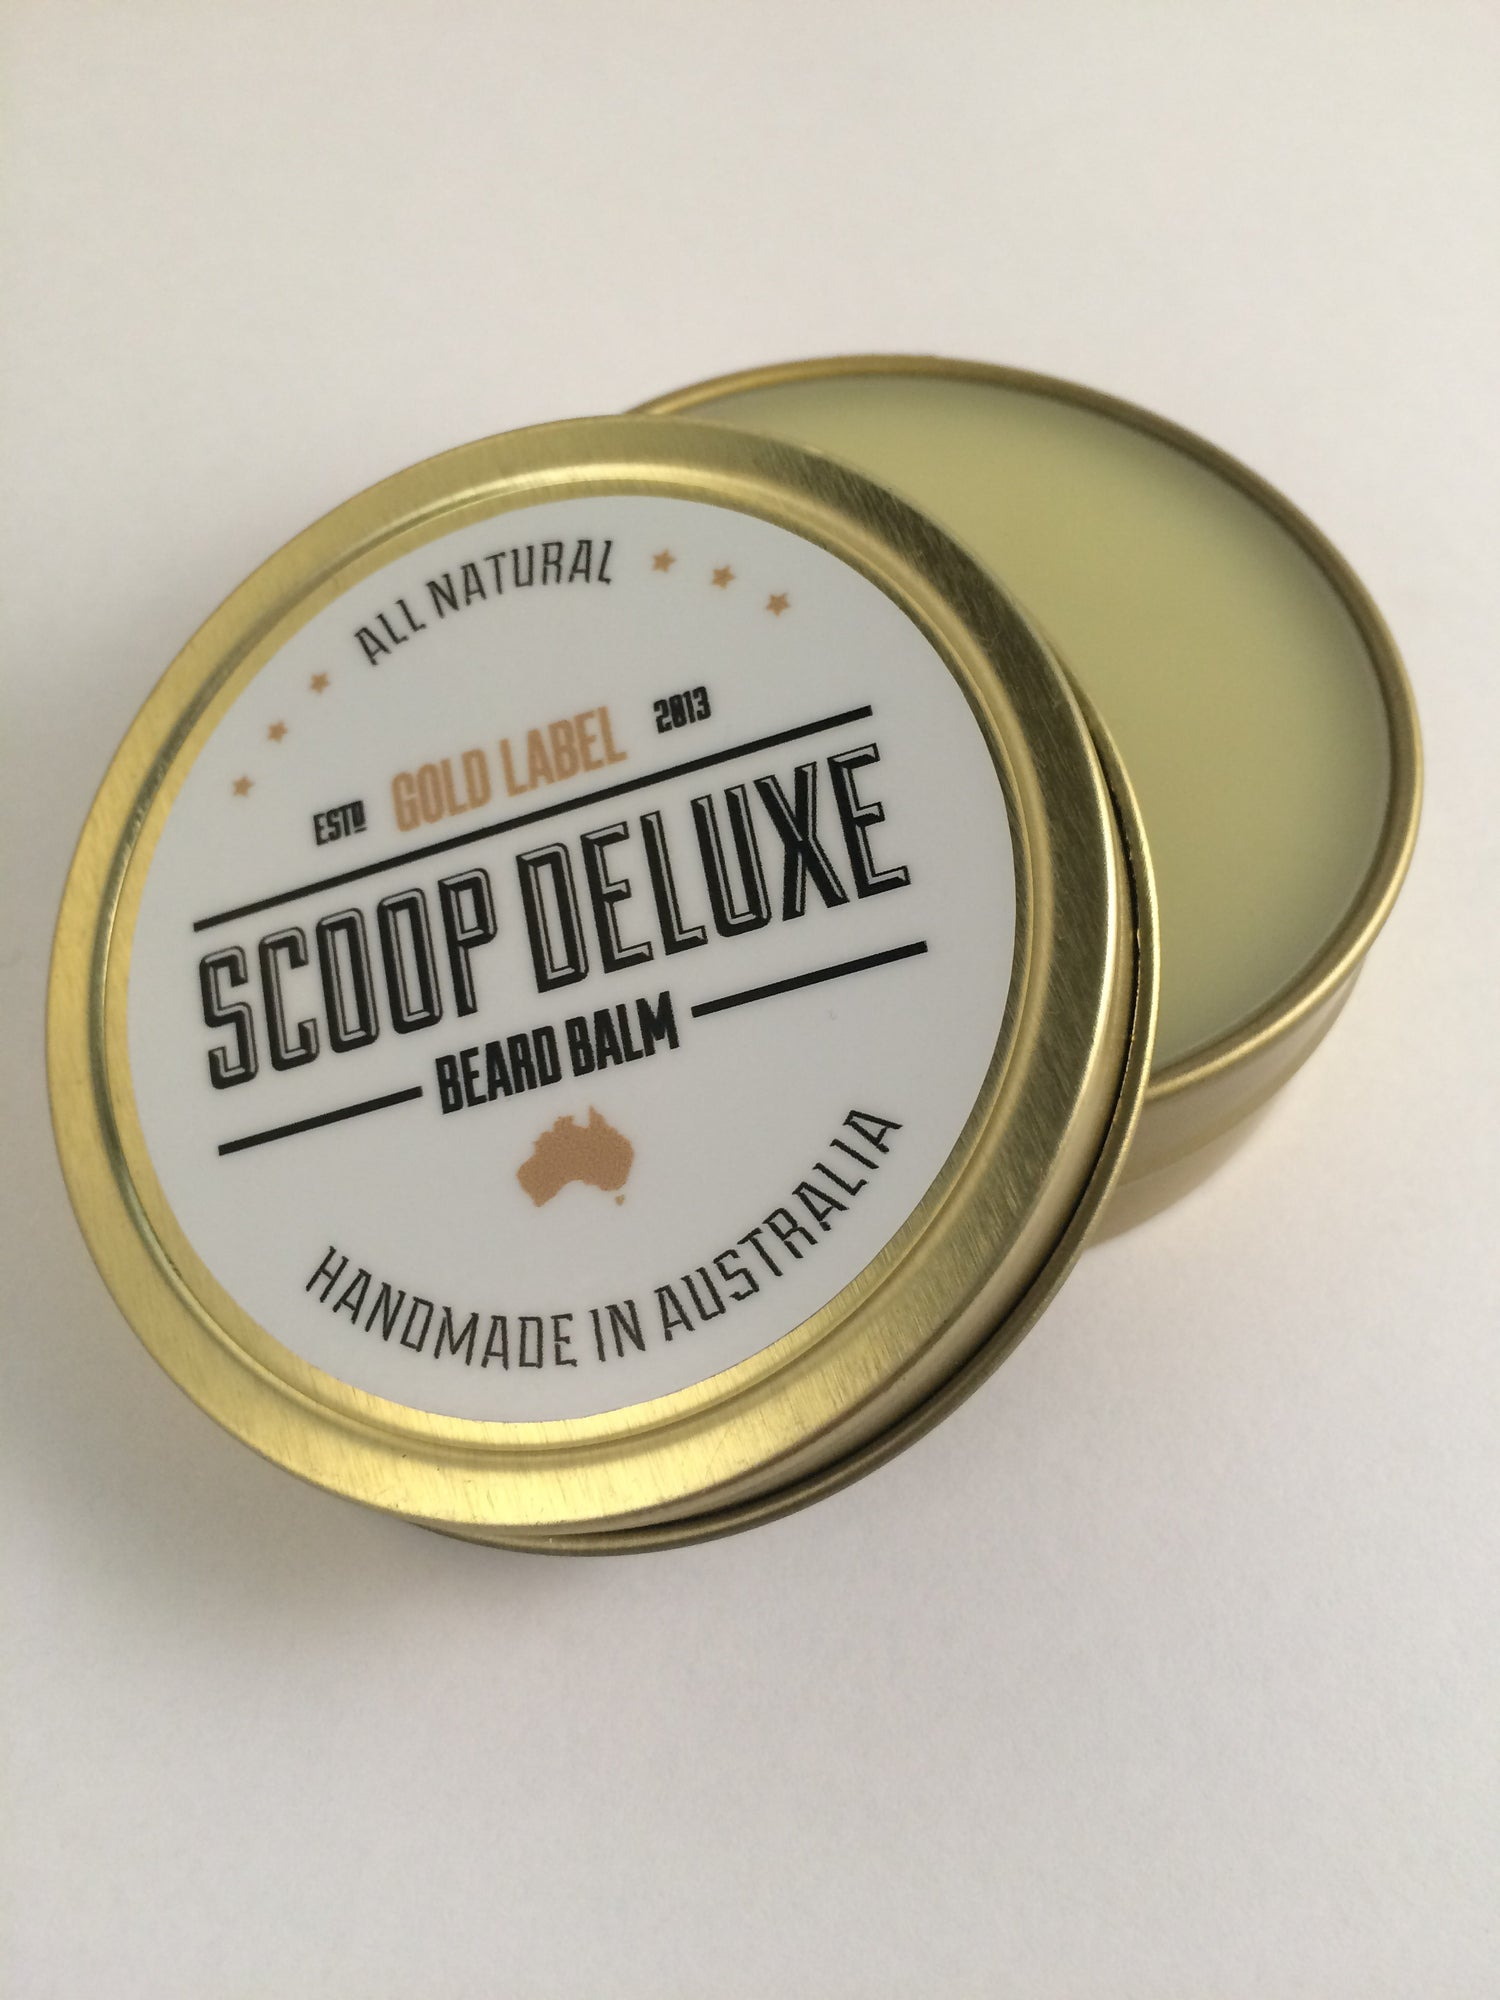 Image of 2oz Scoop Deluxe Beard Balm Gold Label